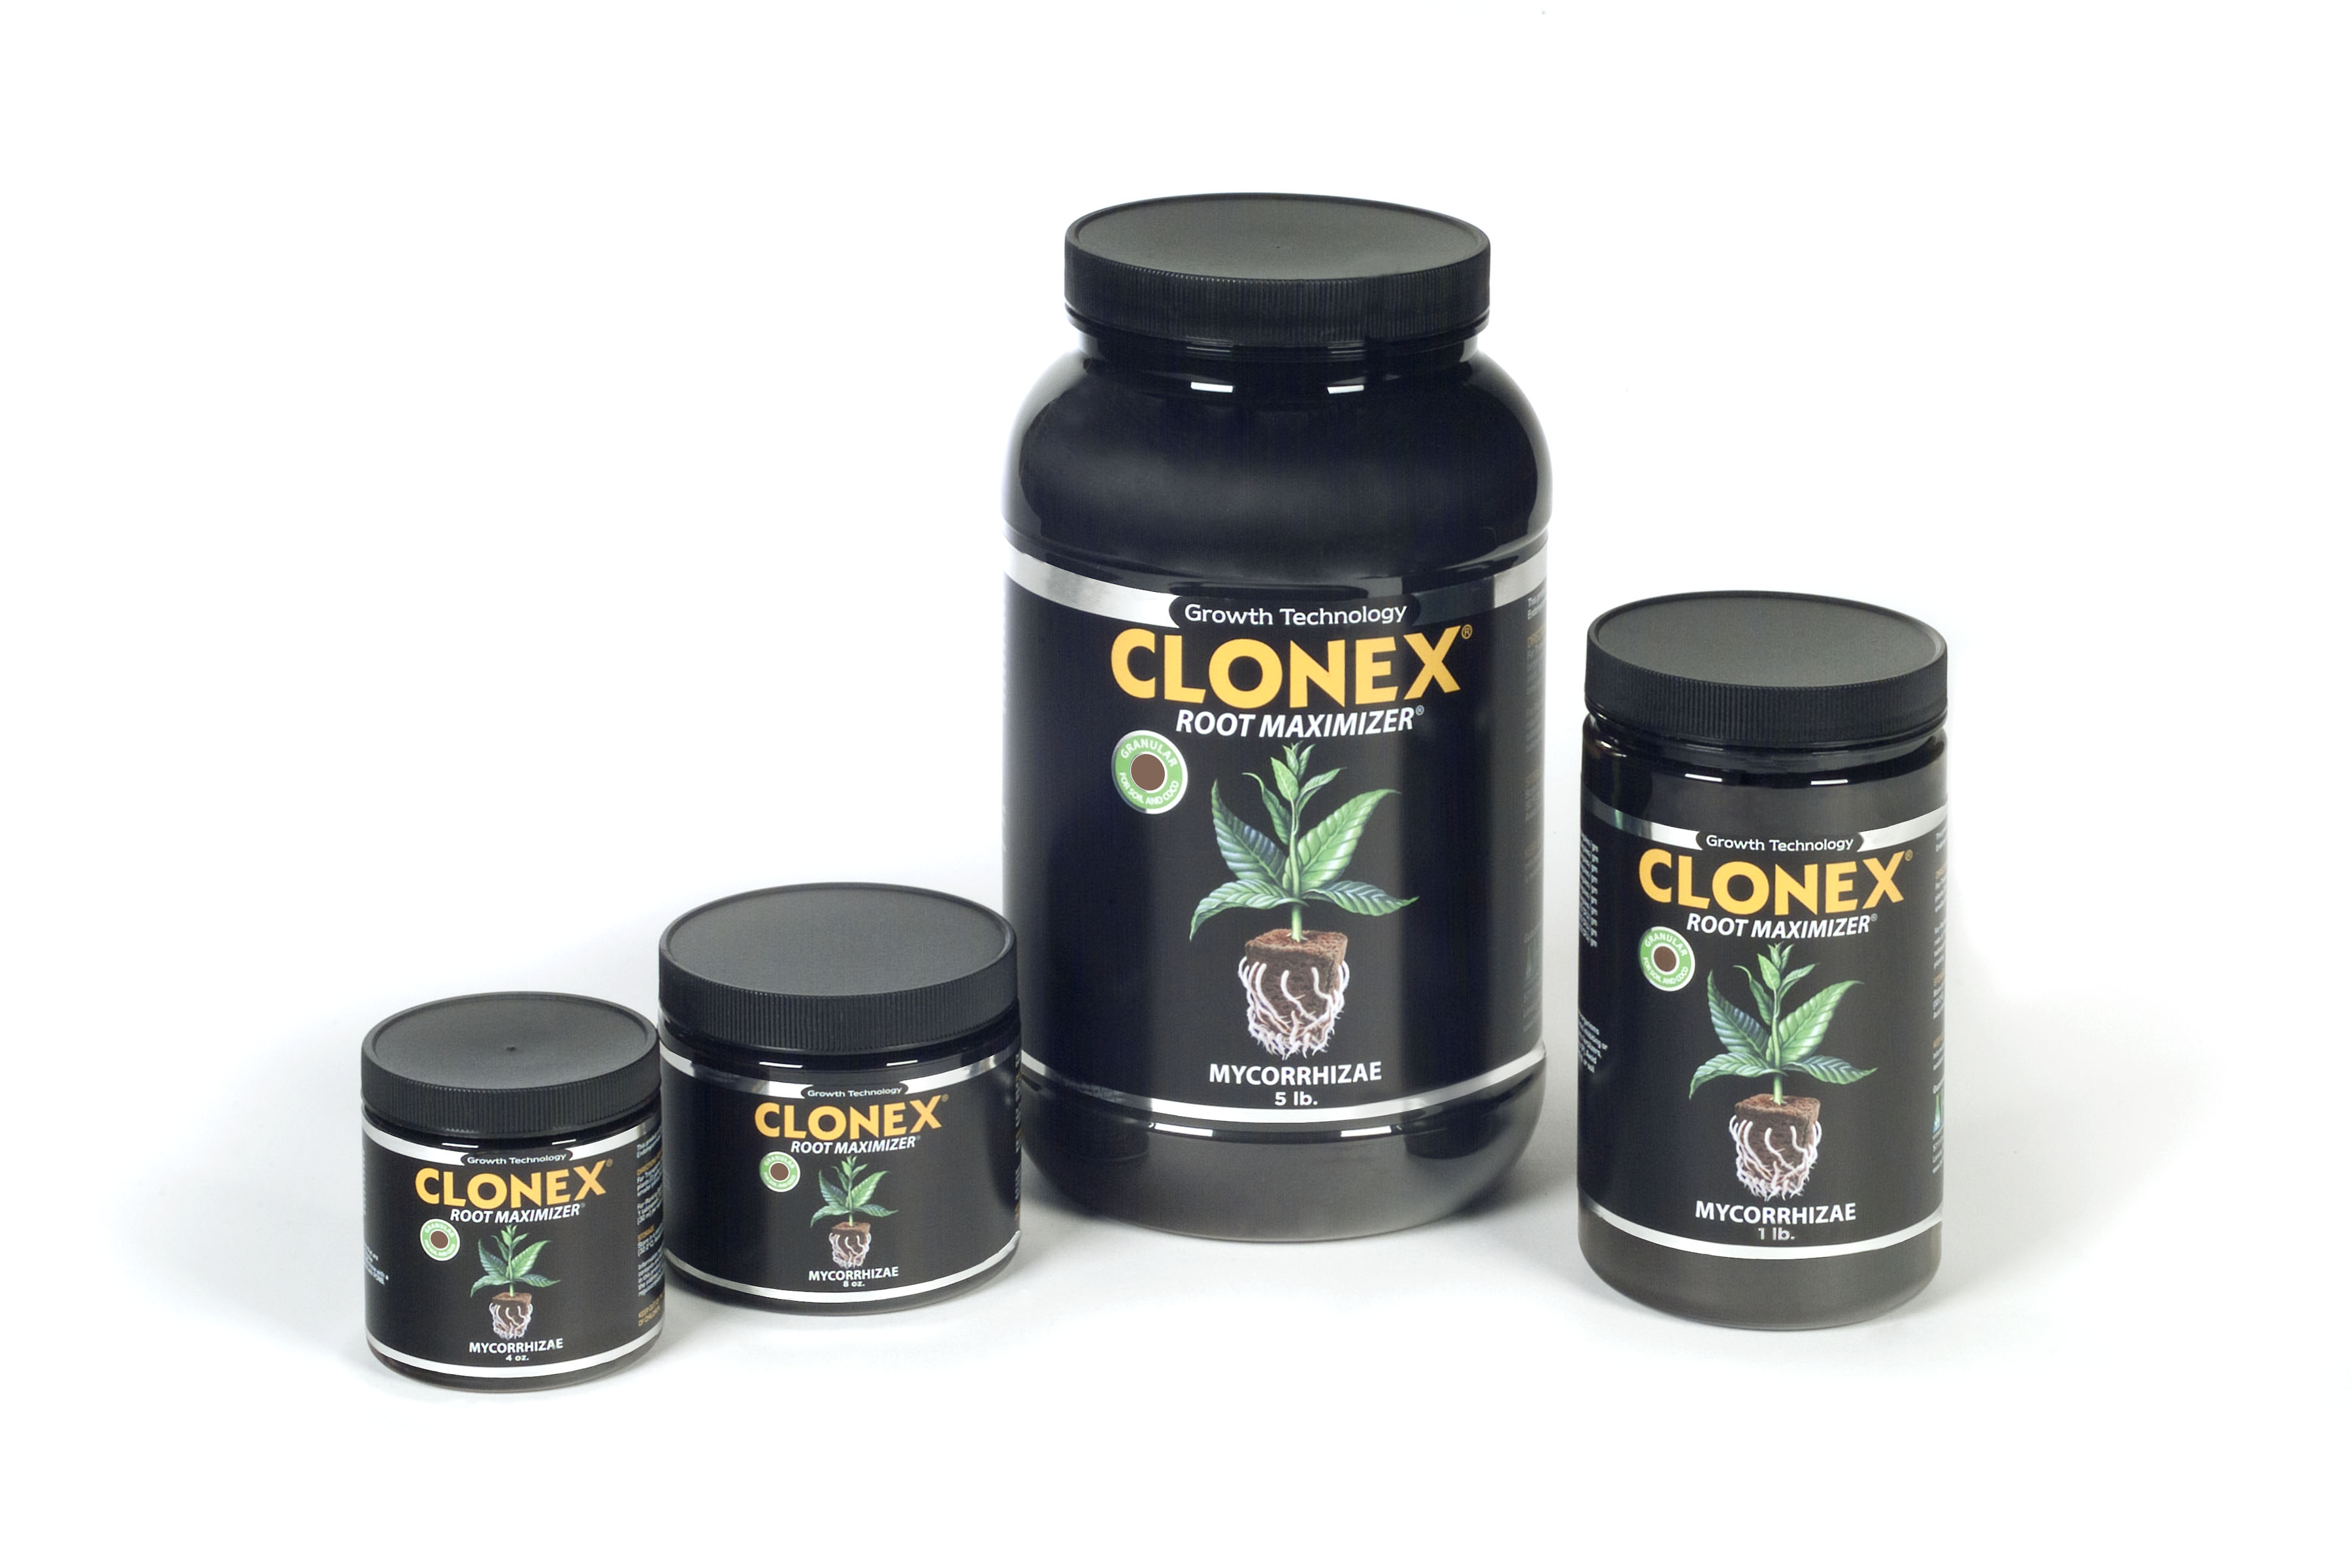 Clonex Root Maximizer - Granular/ for soil applications